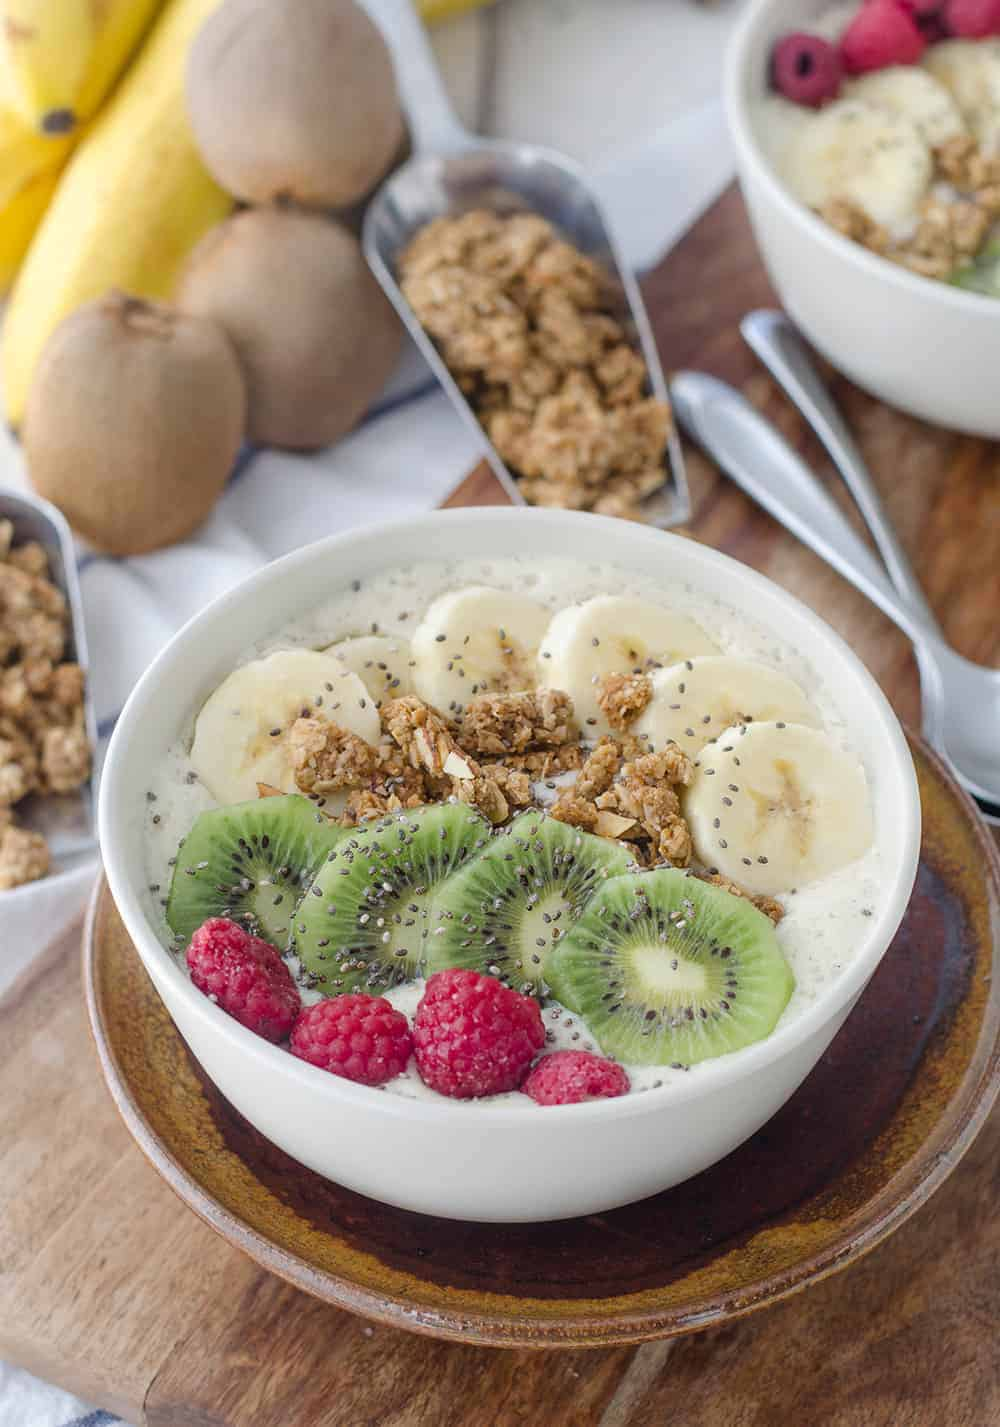 New Zealand Inspired Smoothie Bowls! Kiwi Vanilla Smoothie Bowls topped with Hokey Pokey Granola. A healthy breakfast, packed with almost 20 grams of protein. | www.delishknowledge.com